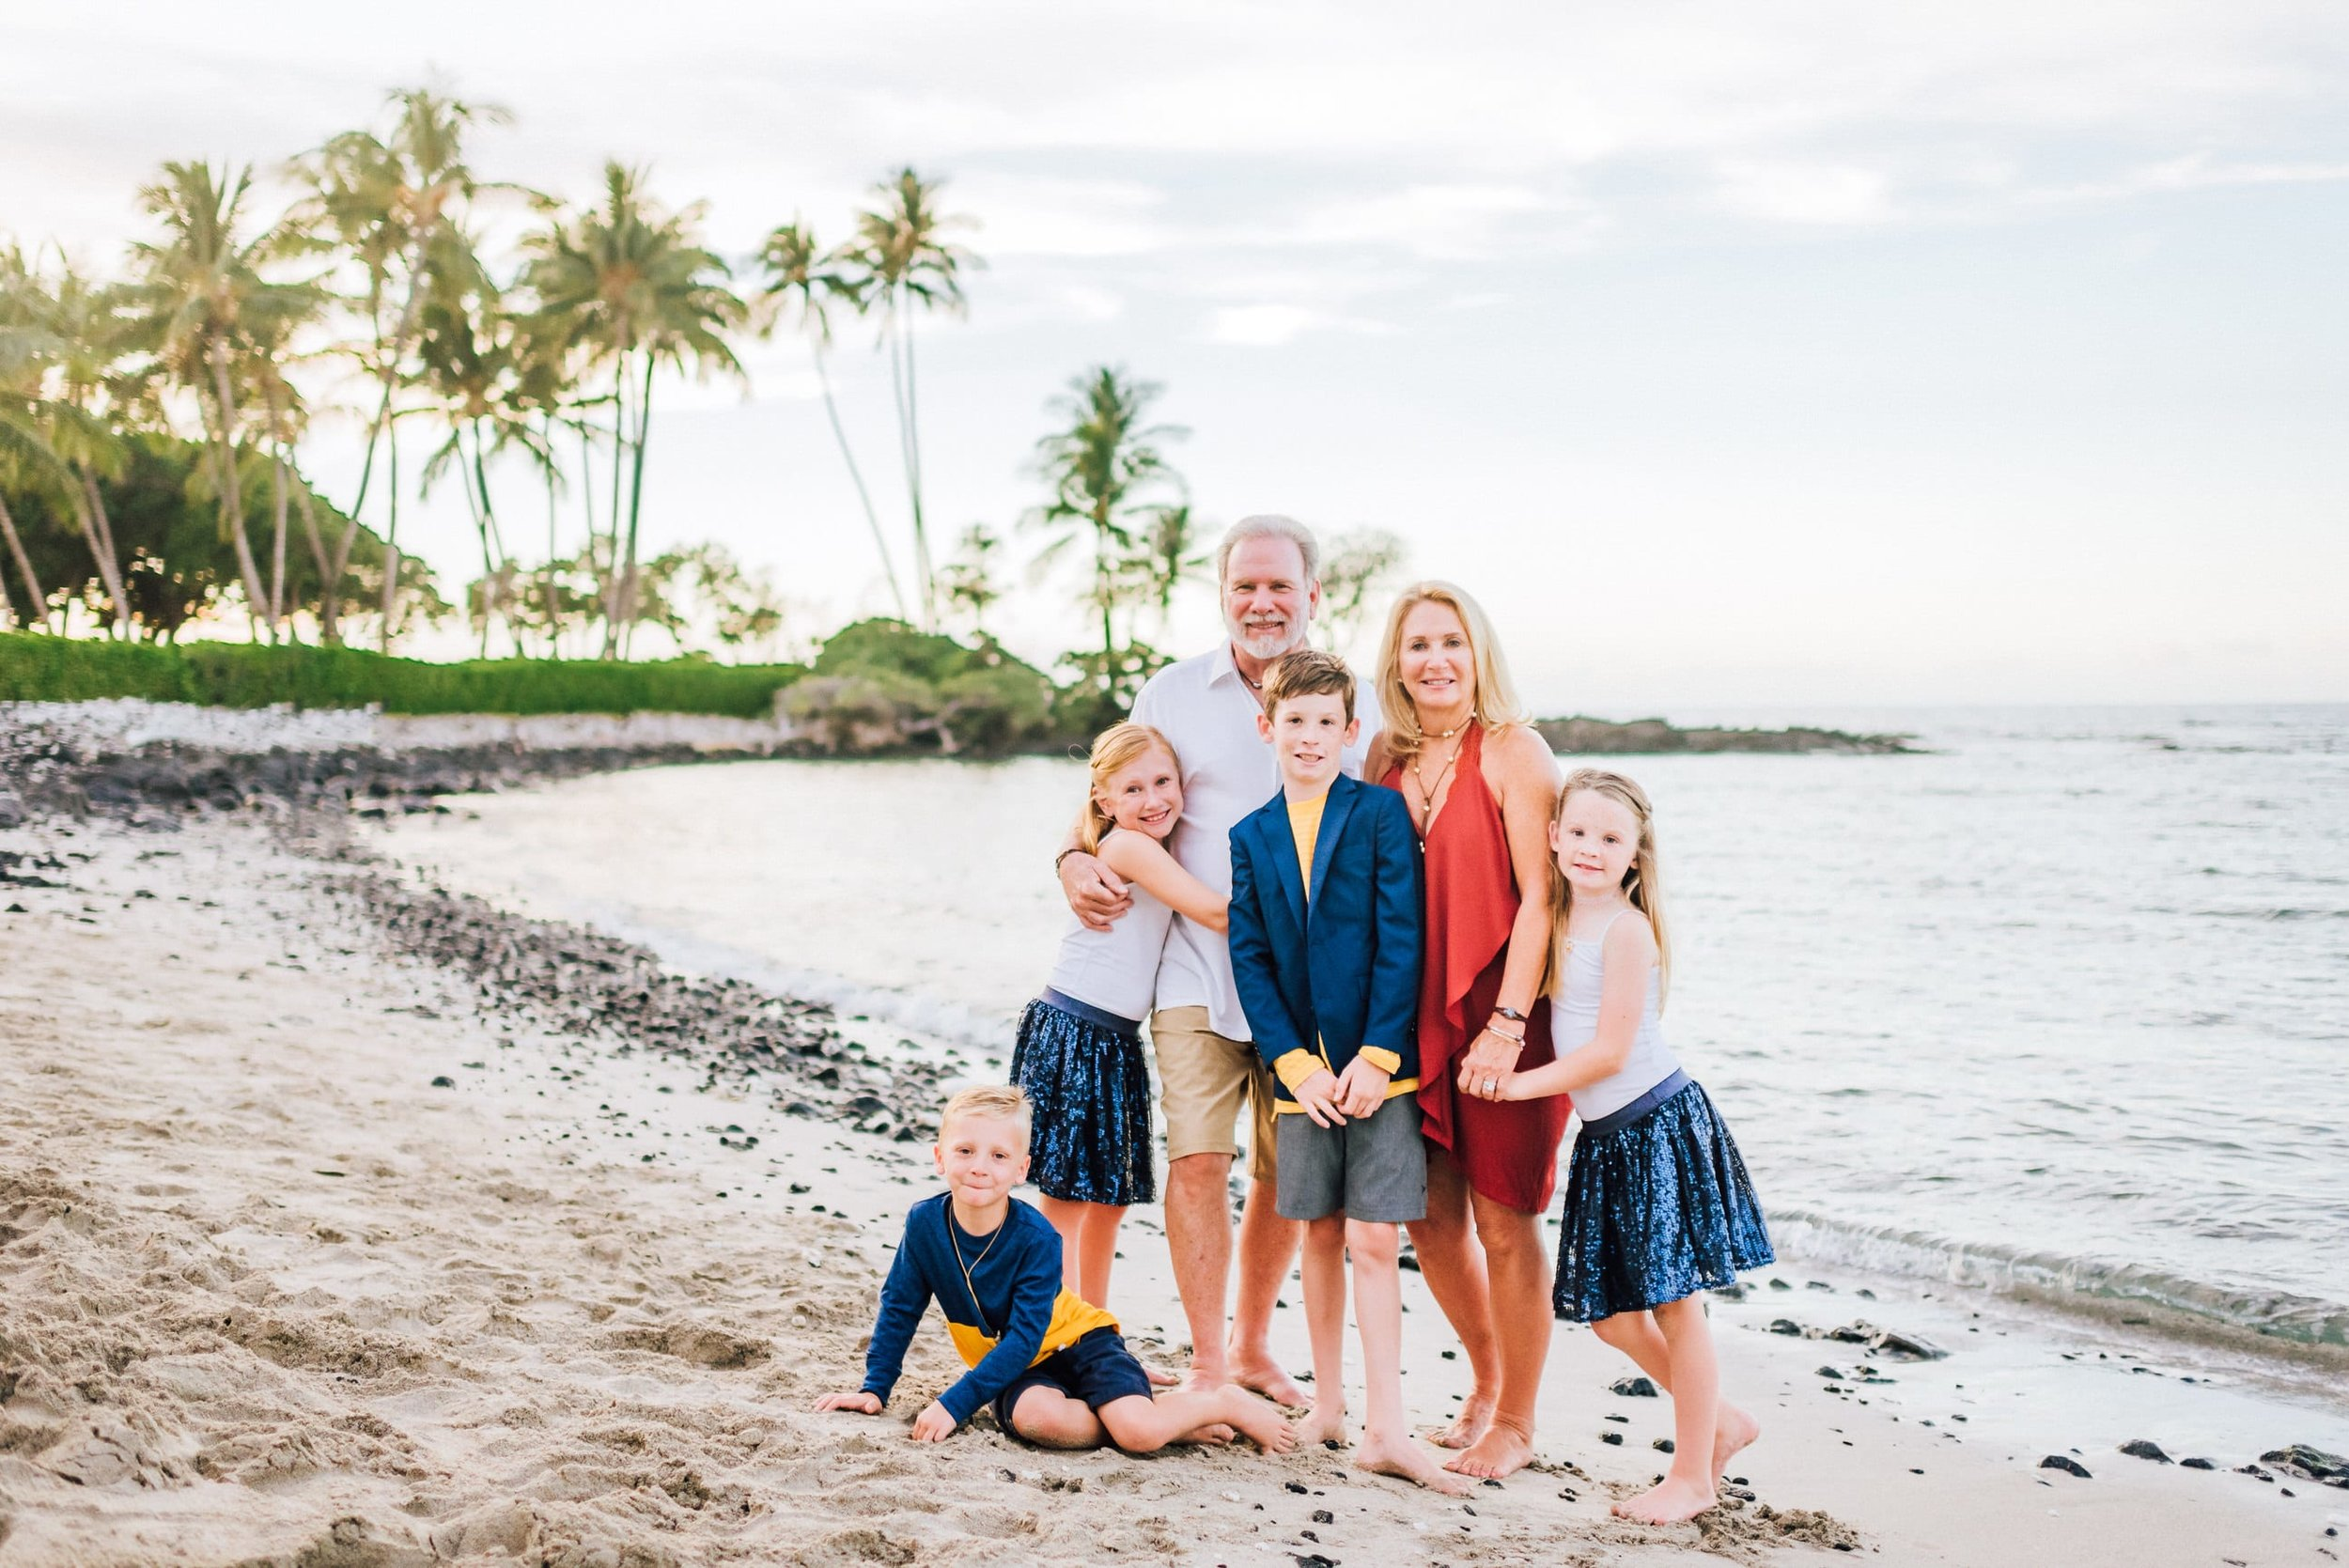 Kona-Photographer-Hawaii-Family-Photos-27.jpg